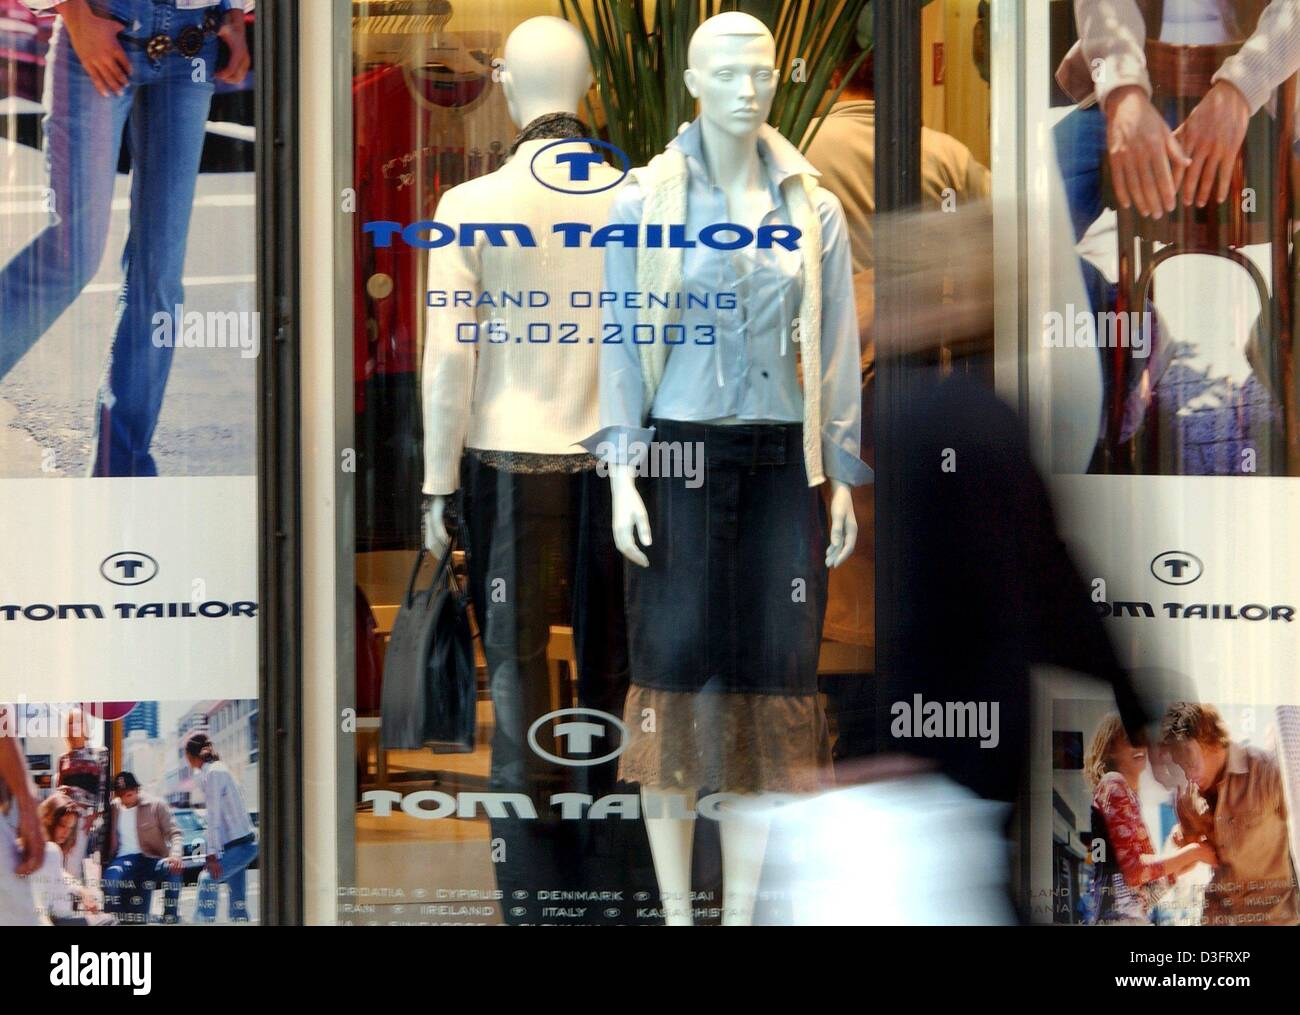 765fce35e70c1a (dpa) - The shop window of the newly opened Tom Tailor store in Duesseldorf